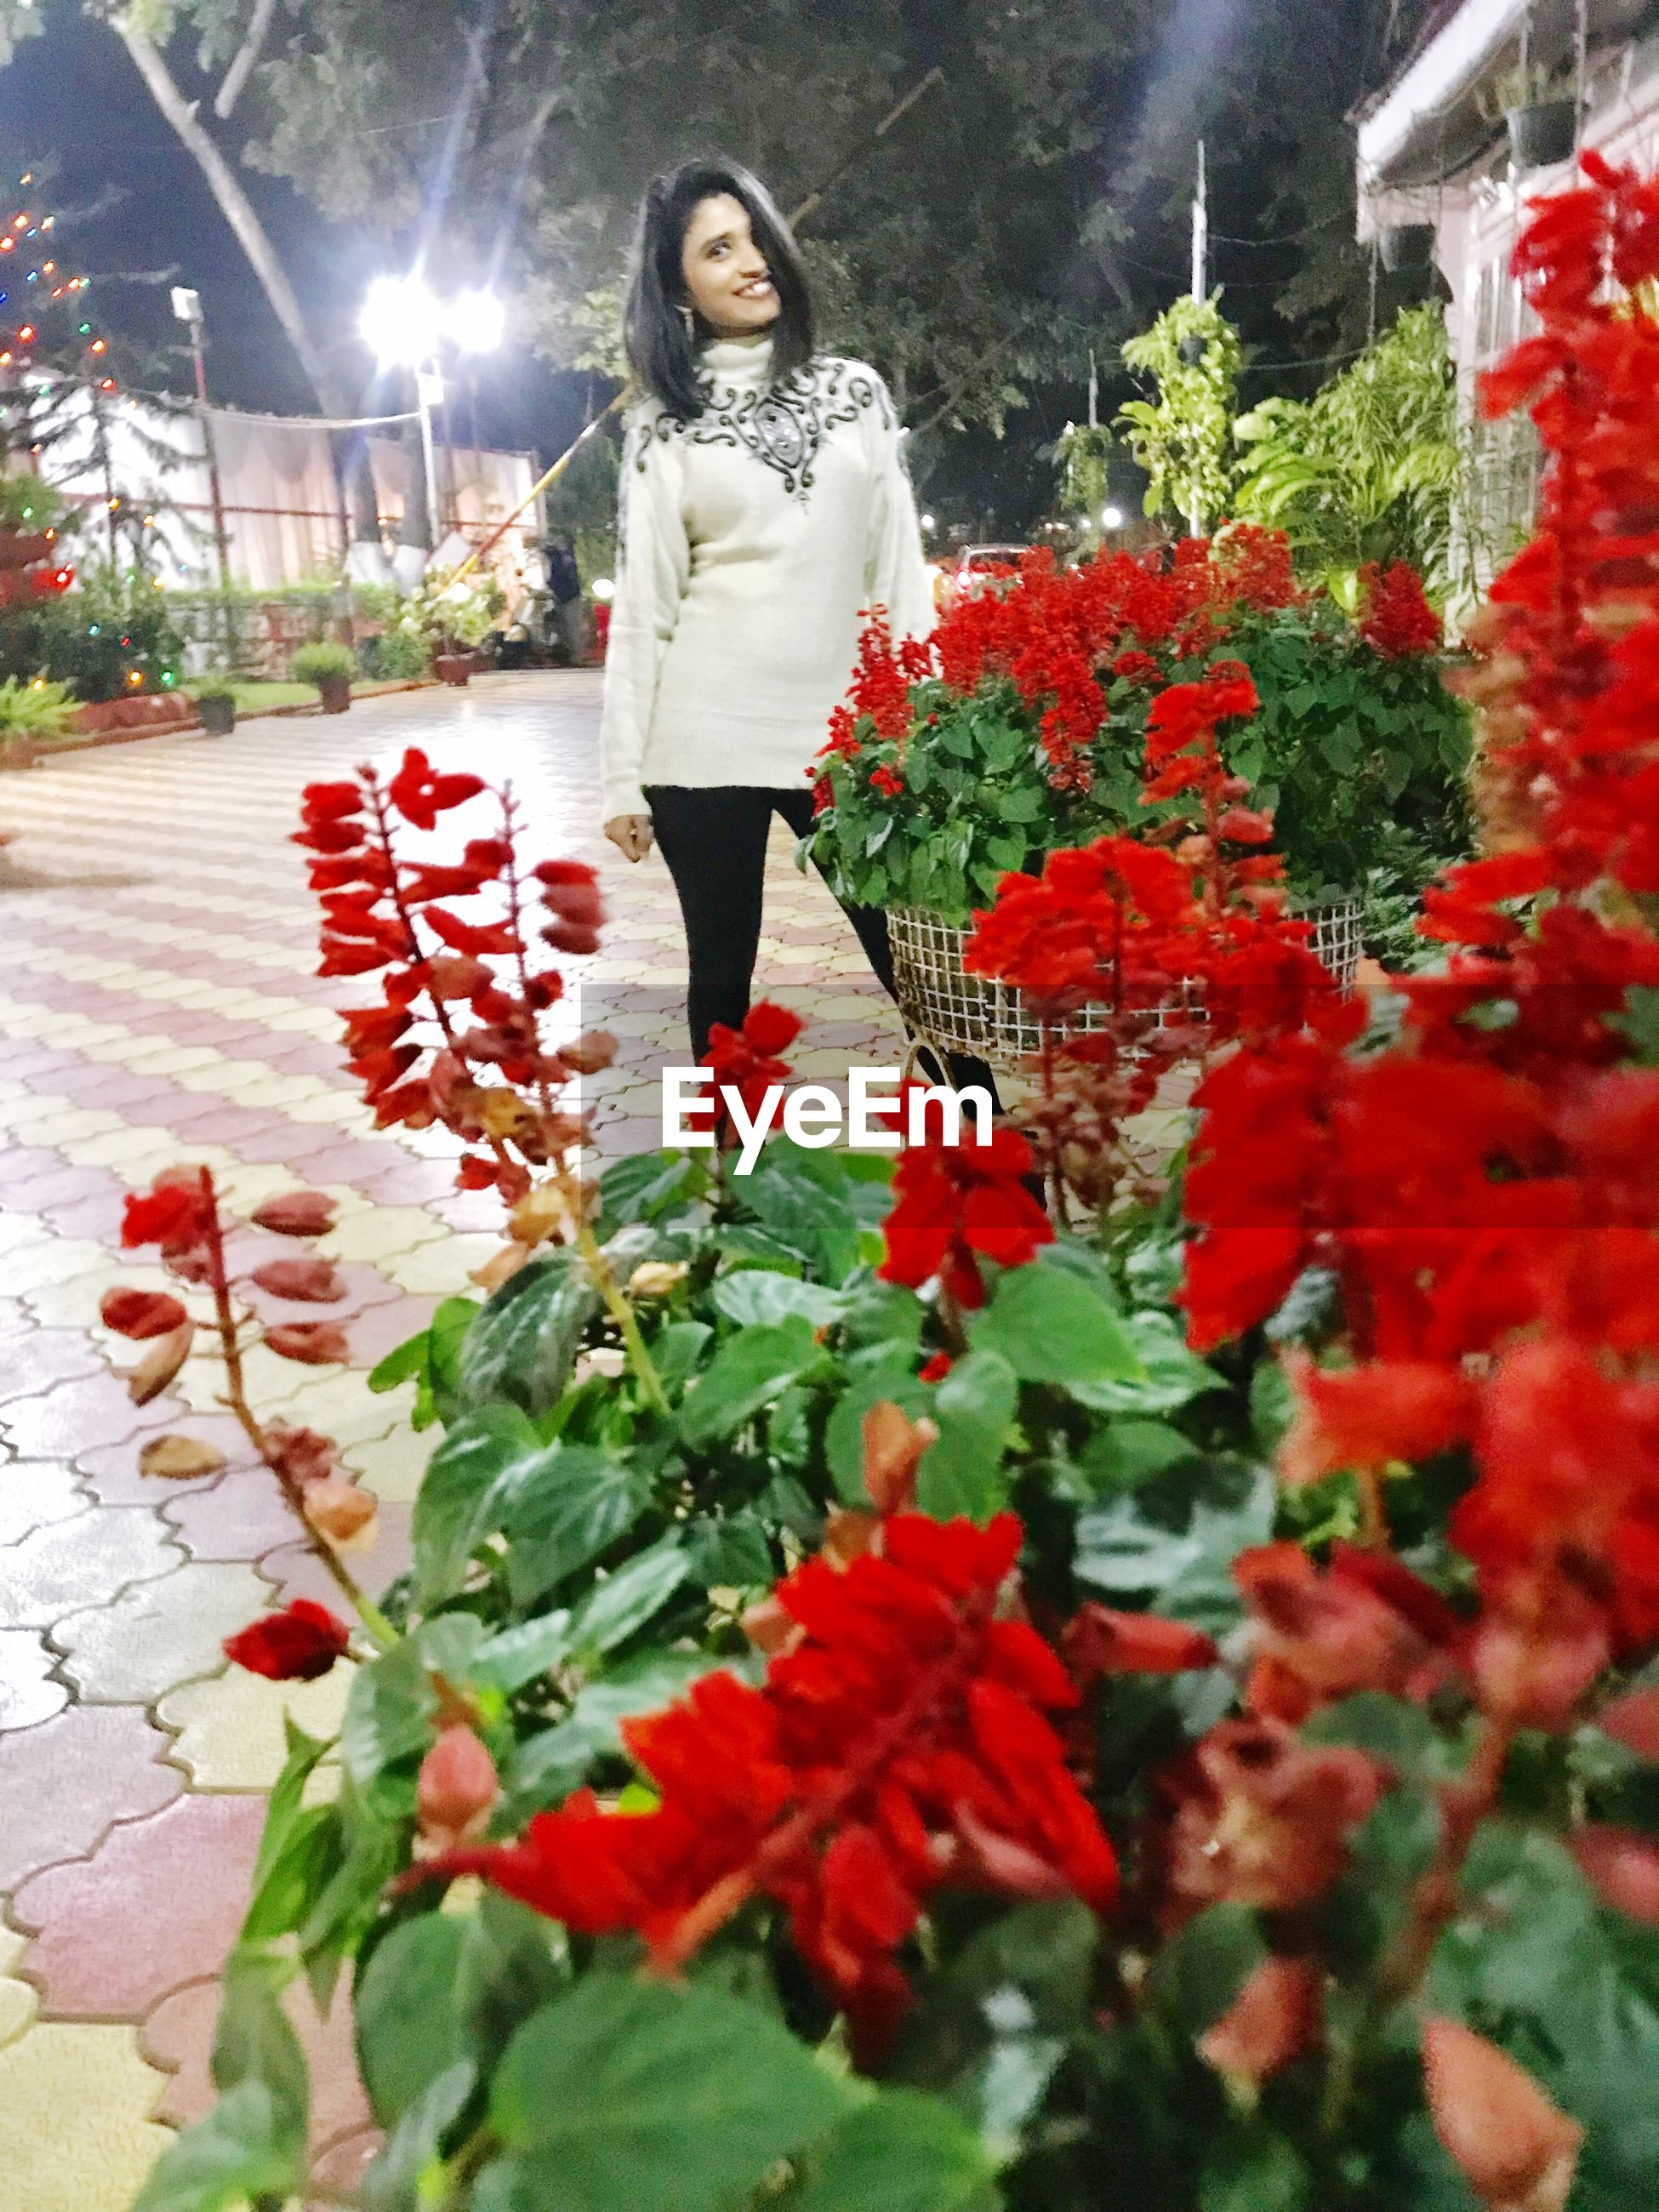 Portrait of woman standing by red flowering plants at night